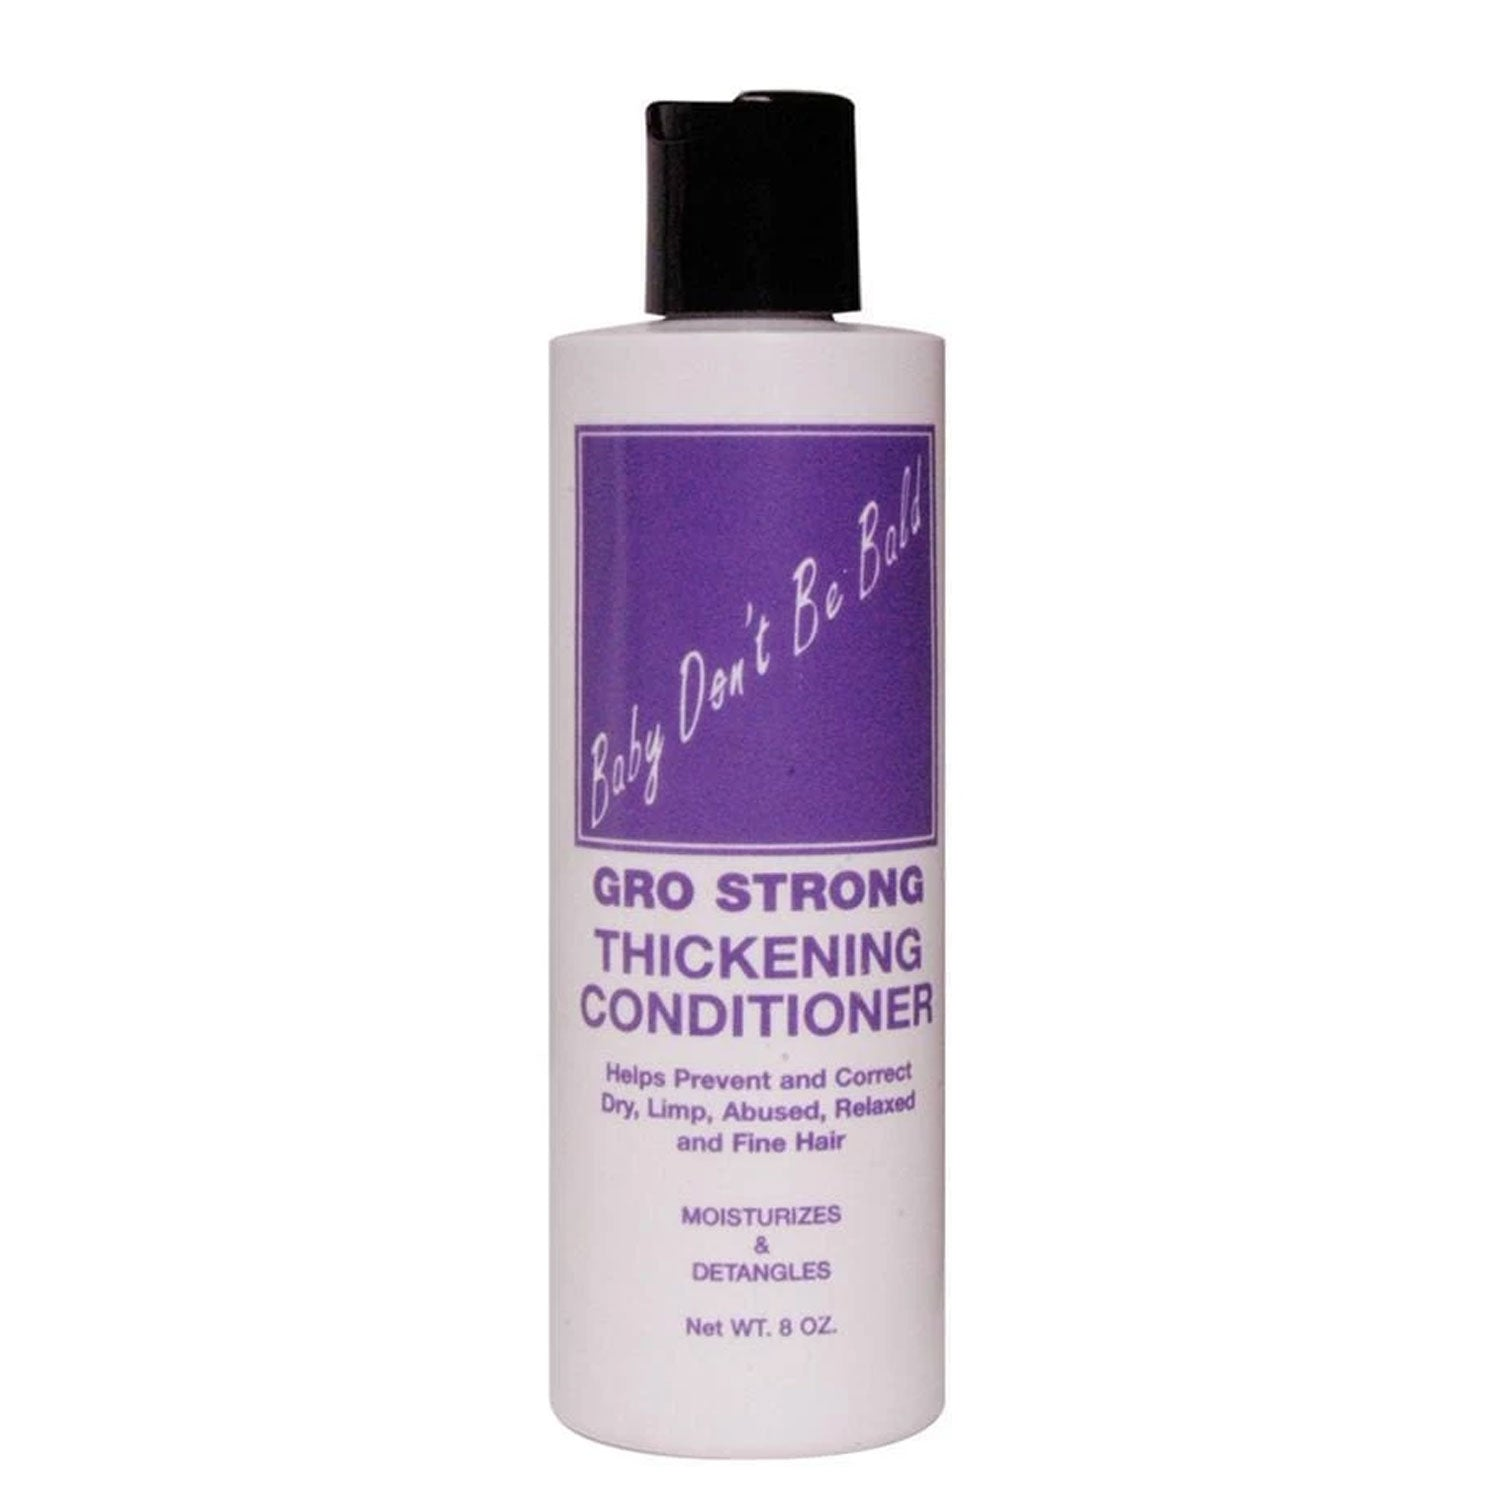 Baby Don't Be Bald Gro Strong Thickening Conditioner, 8 Oz.